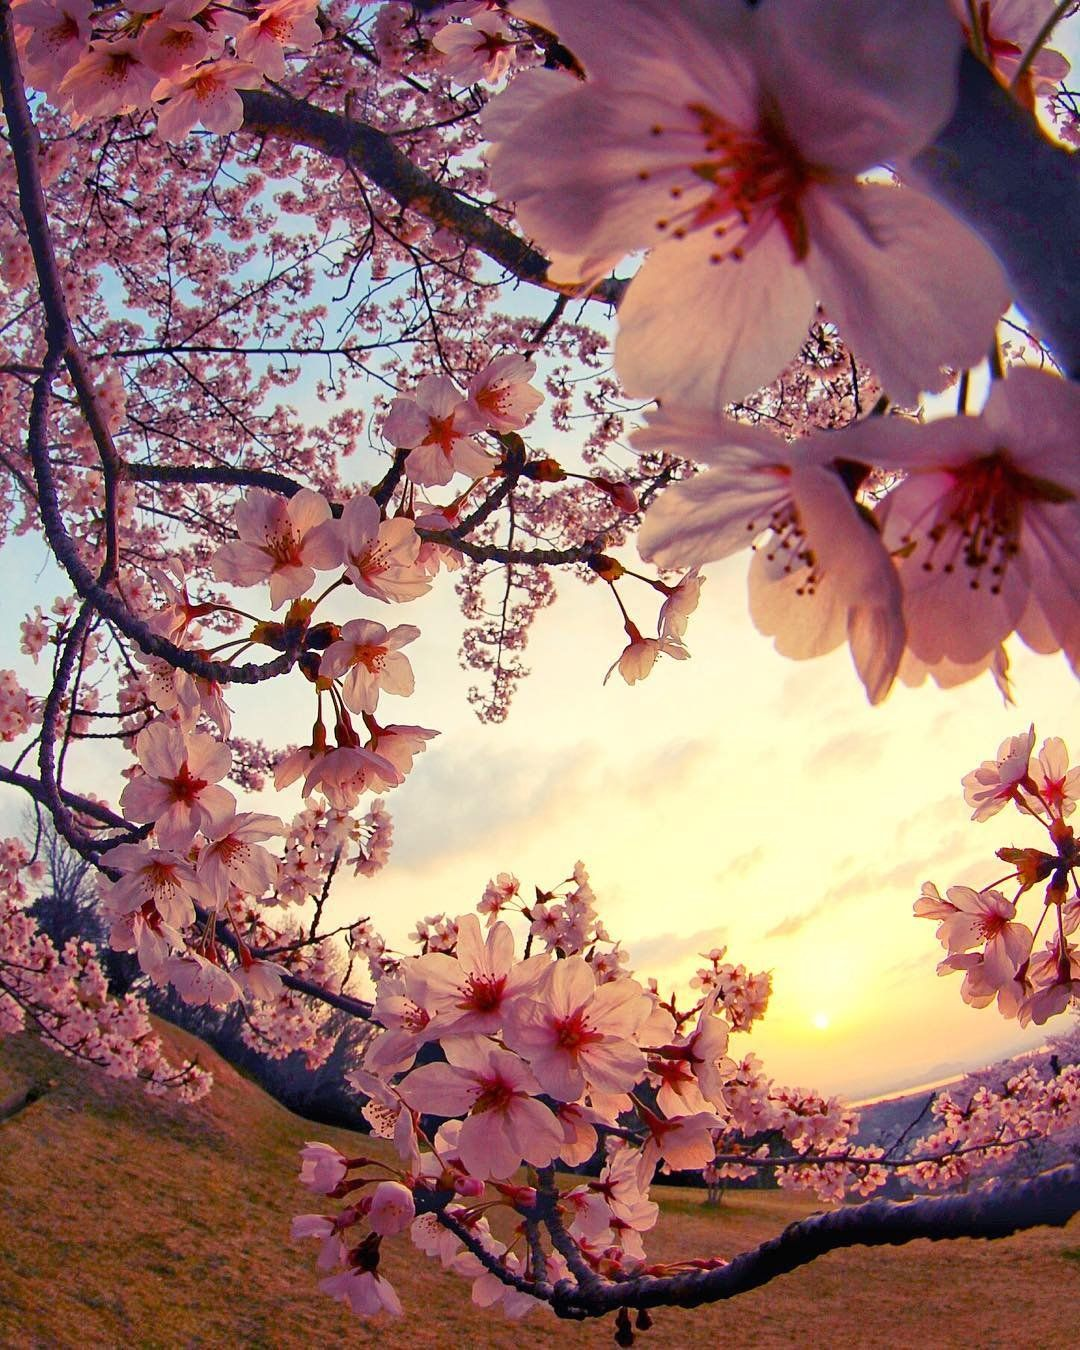 The beauty of the Sakura (Cherry Blossoms) at sunset